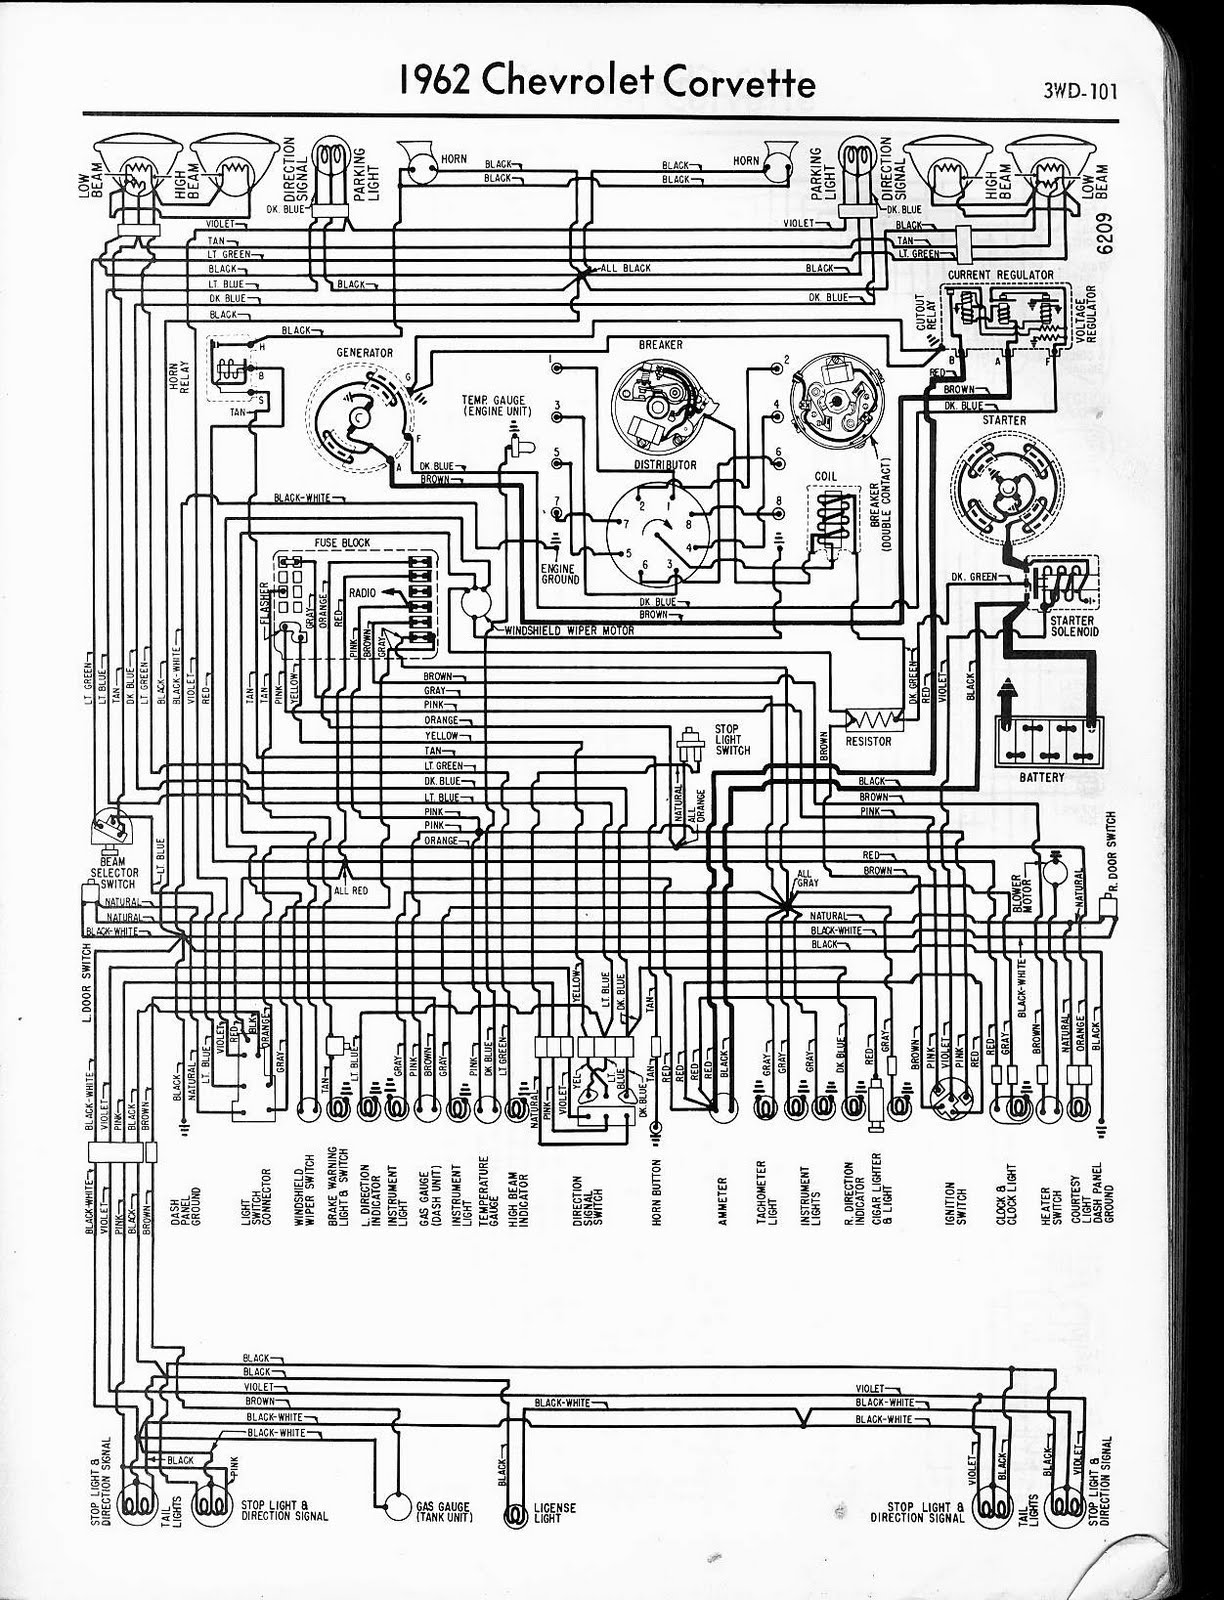 Free Auto Wiring Diagram 1970 Plymouth Belvedere Runner Satellite Electrical Diagrams This Is A Of 1962 Chevrolet Corvette It Shows The Various Circuits Fuses Distributor Etcclick Picture To Download